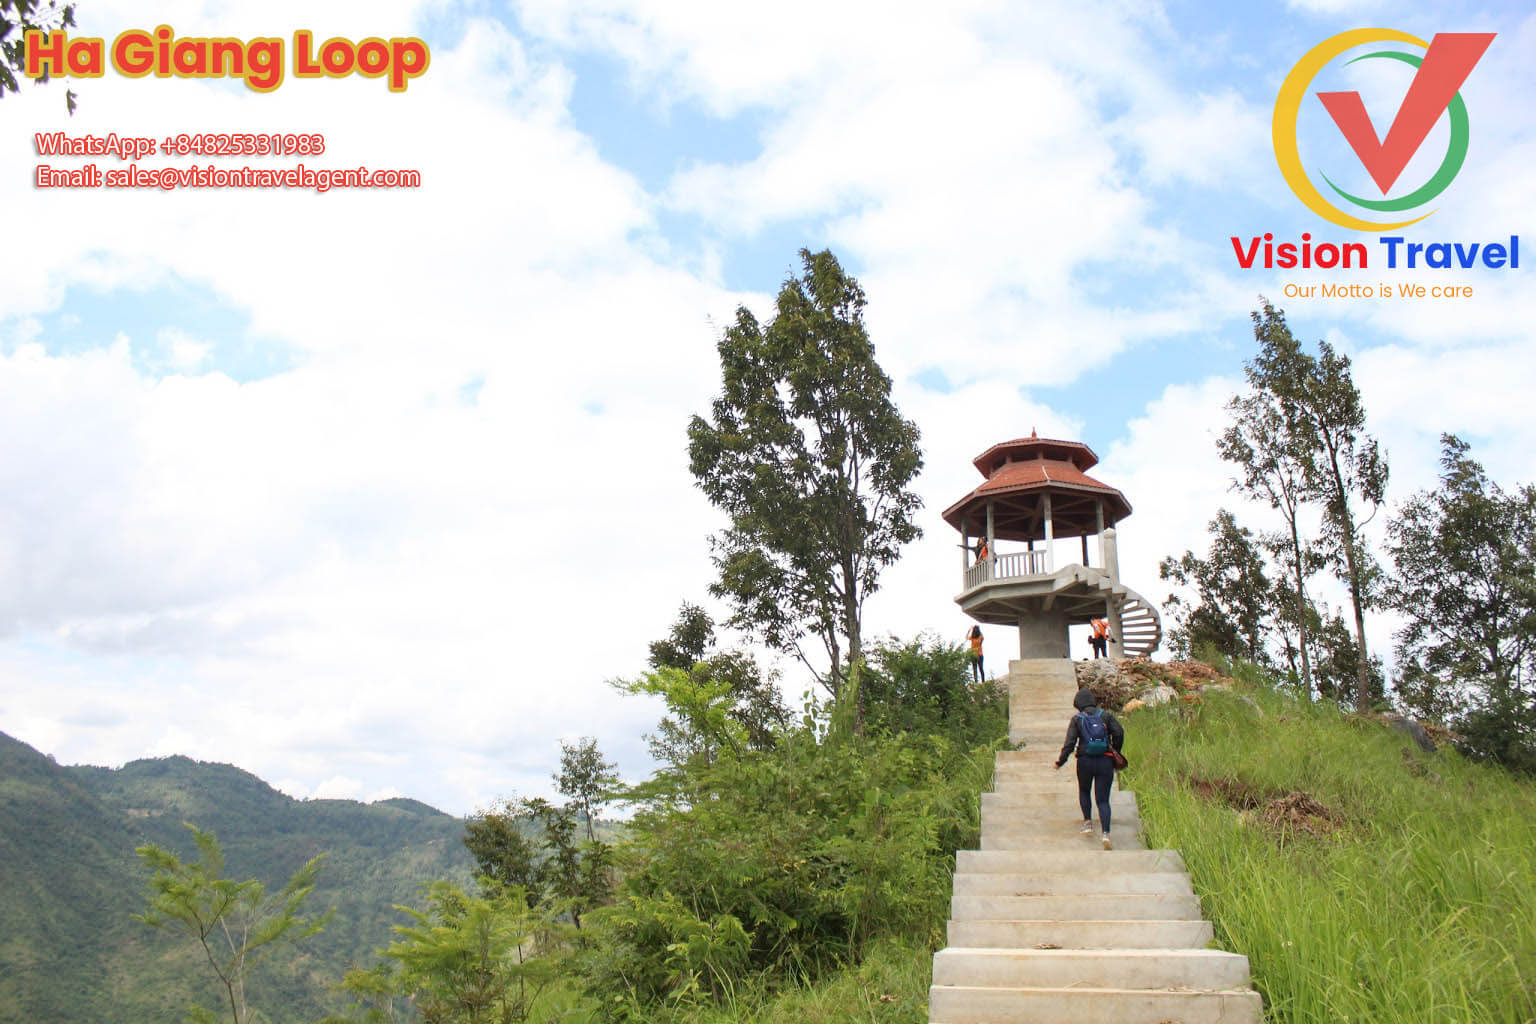 Lung Cu village - Pa Vi village6-day by vehicle Captivating Ha Giang tour (Home stay, Trekking, Market)